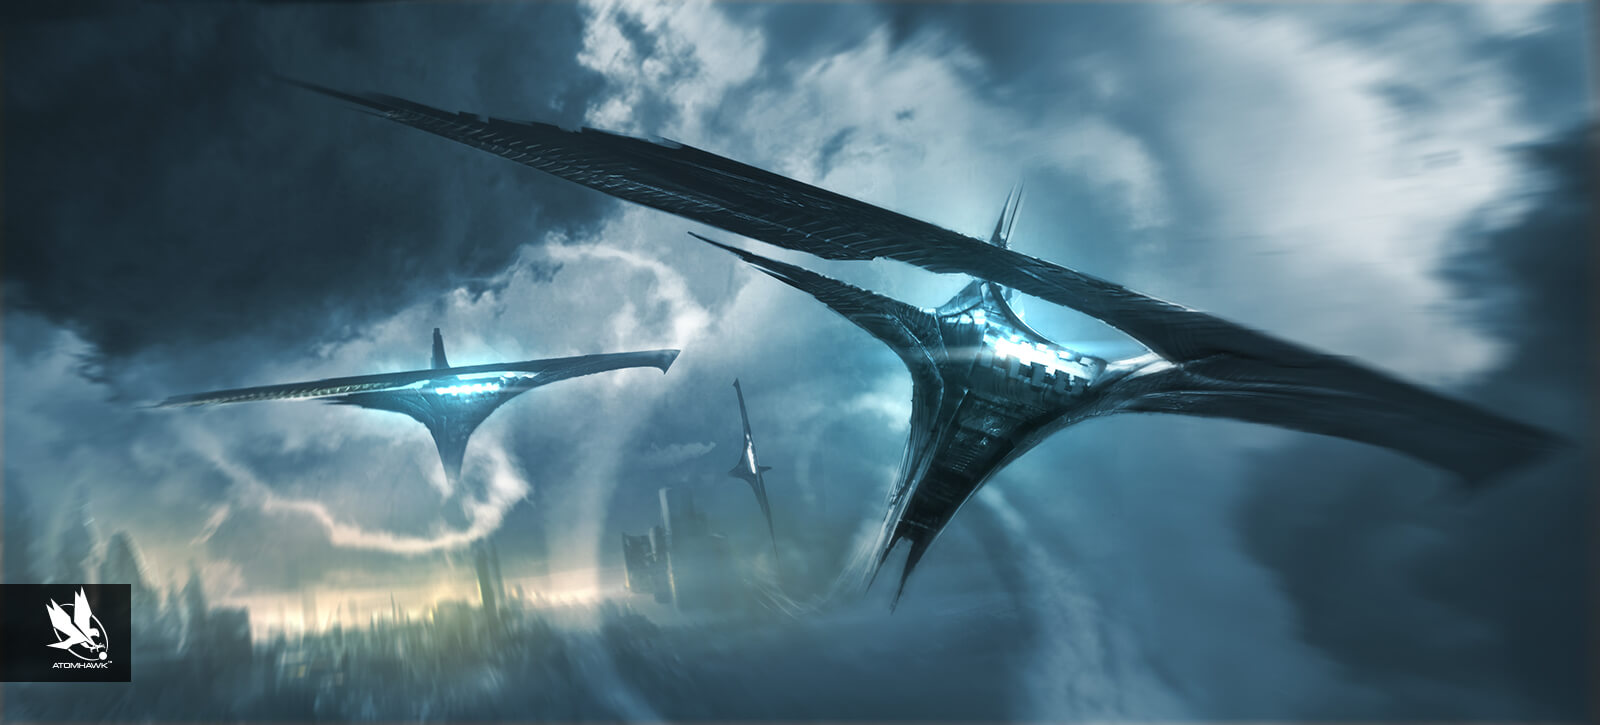 Thor The Dark World - Spacecraft Design - Troopship in Flight